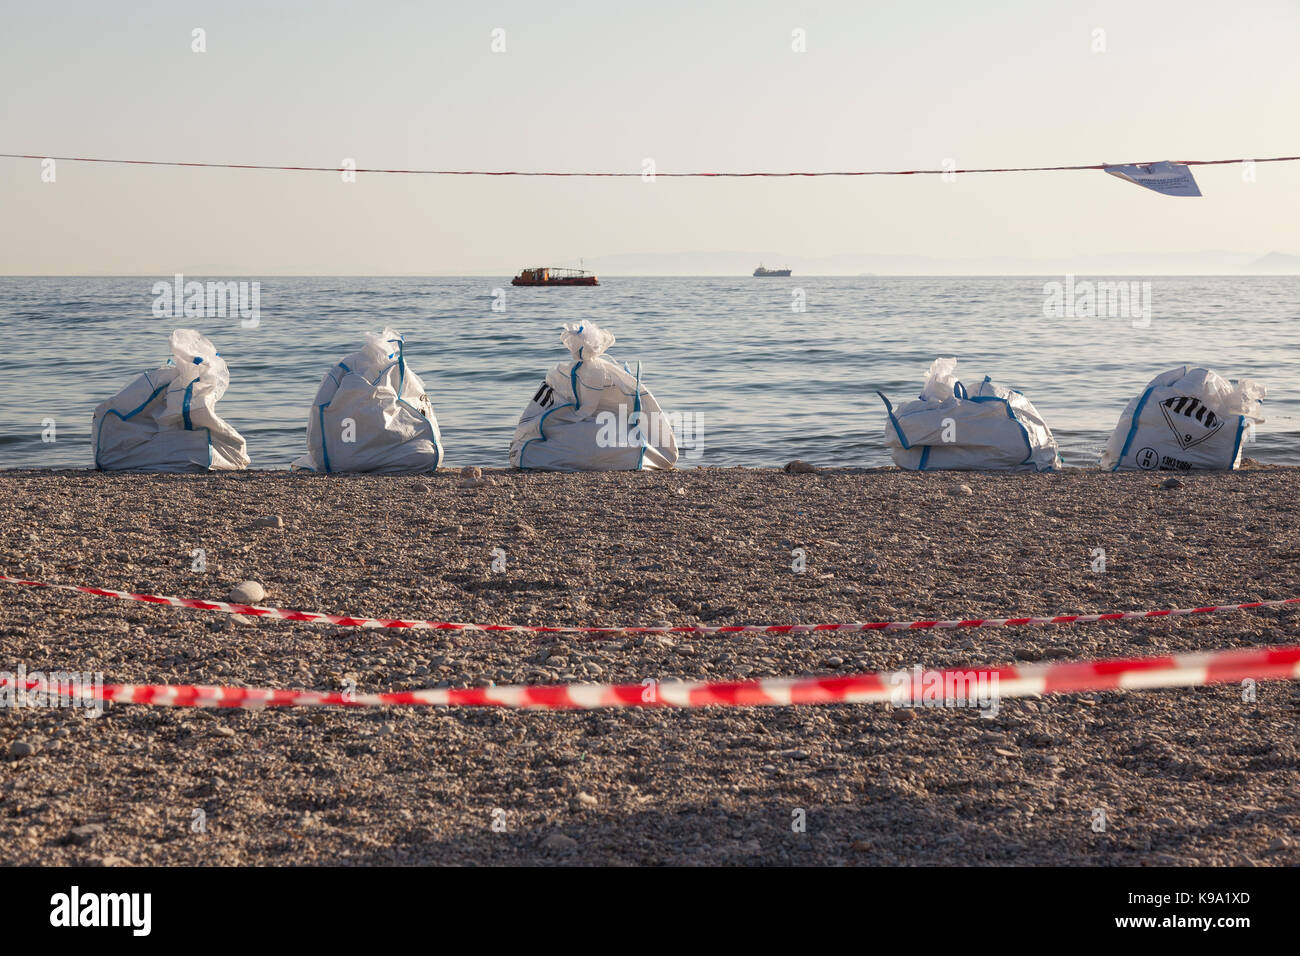 The beach of Glyfada, in Athens, Greece, during the days of the oil spill in the Saronic Gulf. - Stock Image